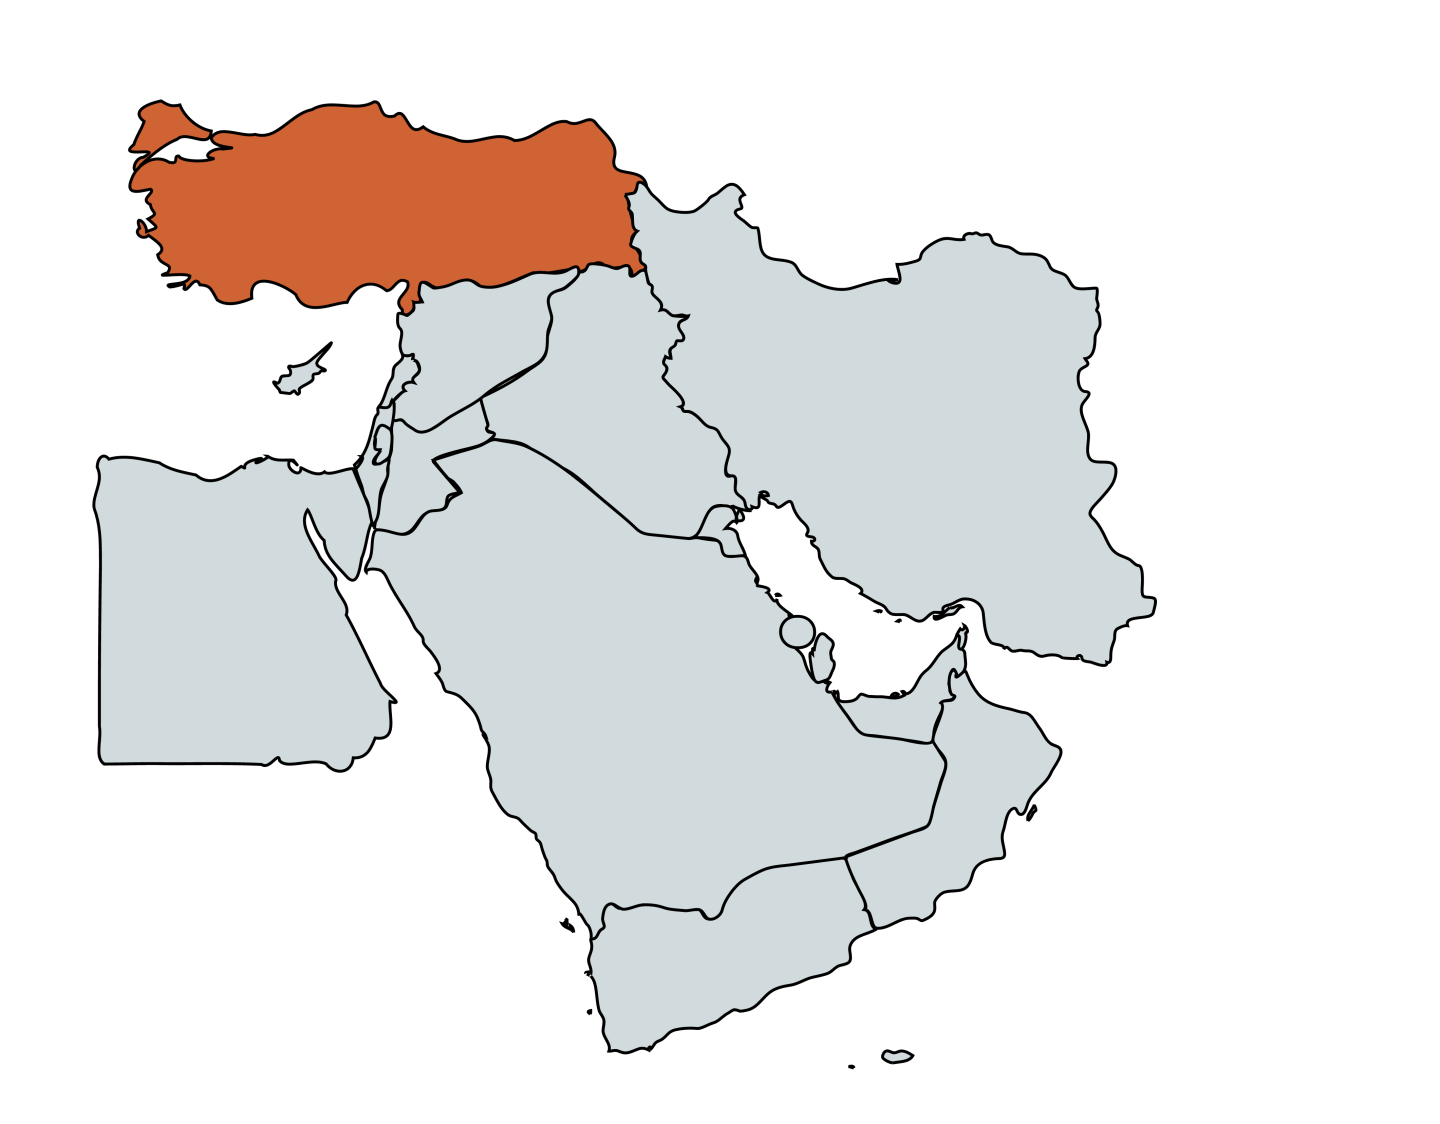 Map of the Middle East with Turkey highlighted